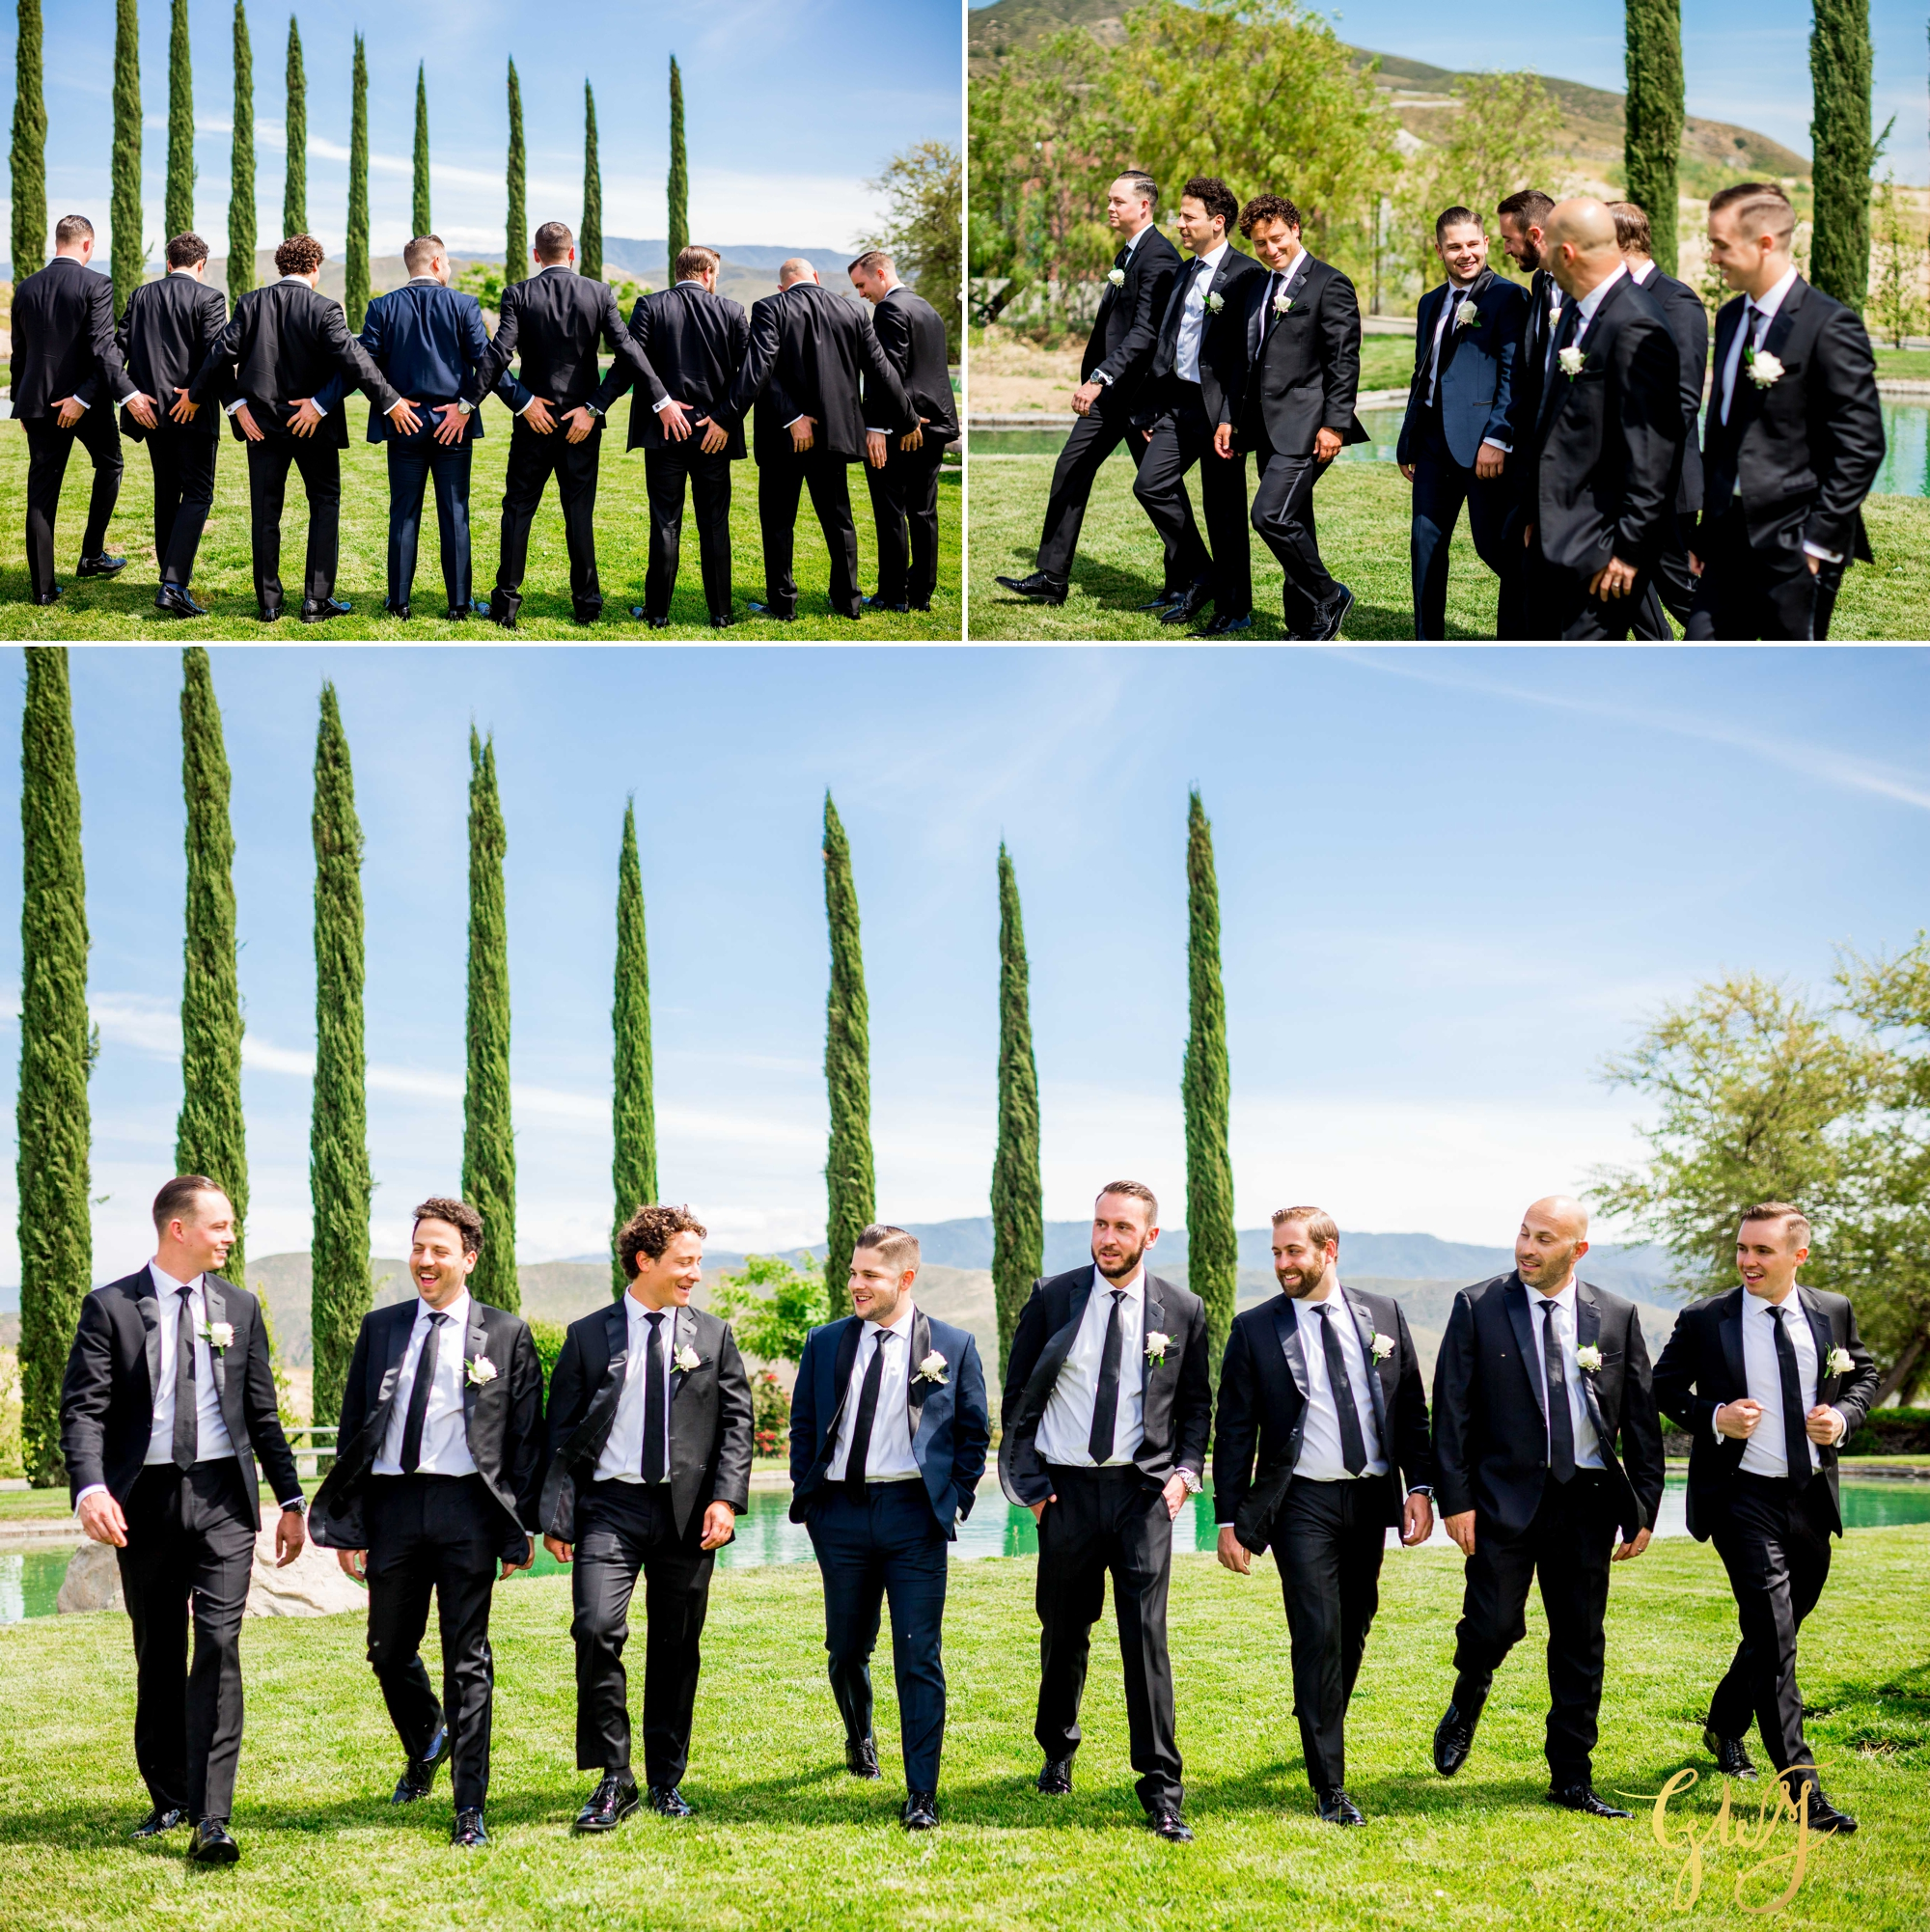 Kristen + Krsto's Romantic Temecula Winery Spring Wedding by Glass Woods Media 13.jpg